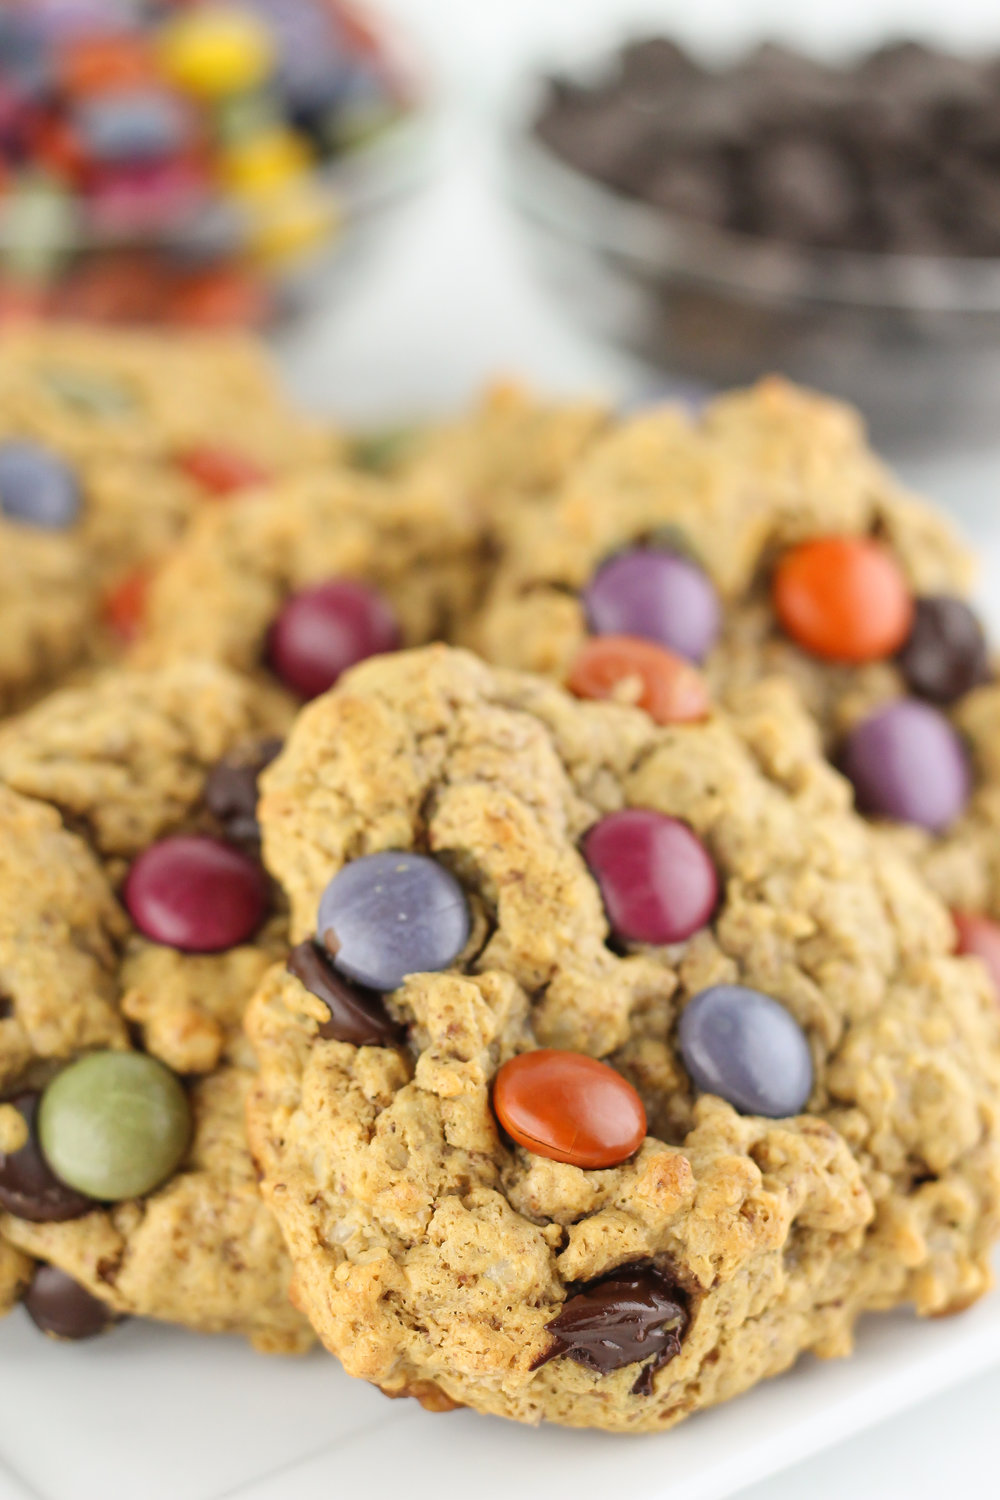 monster cookies, healthy cookies, clean cookies, paleo, food blogger, recipes, cookie bake, healthy holiday cookies, christmas cookies,